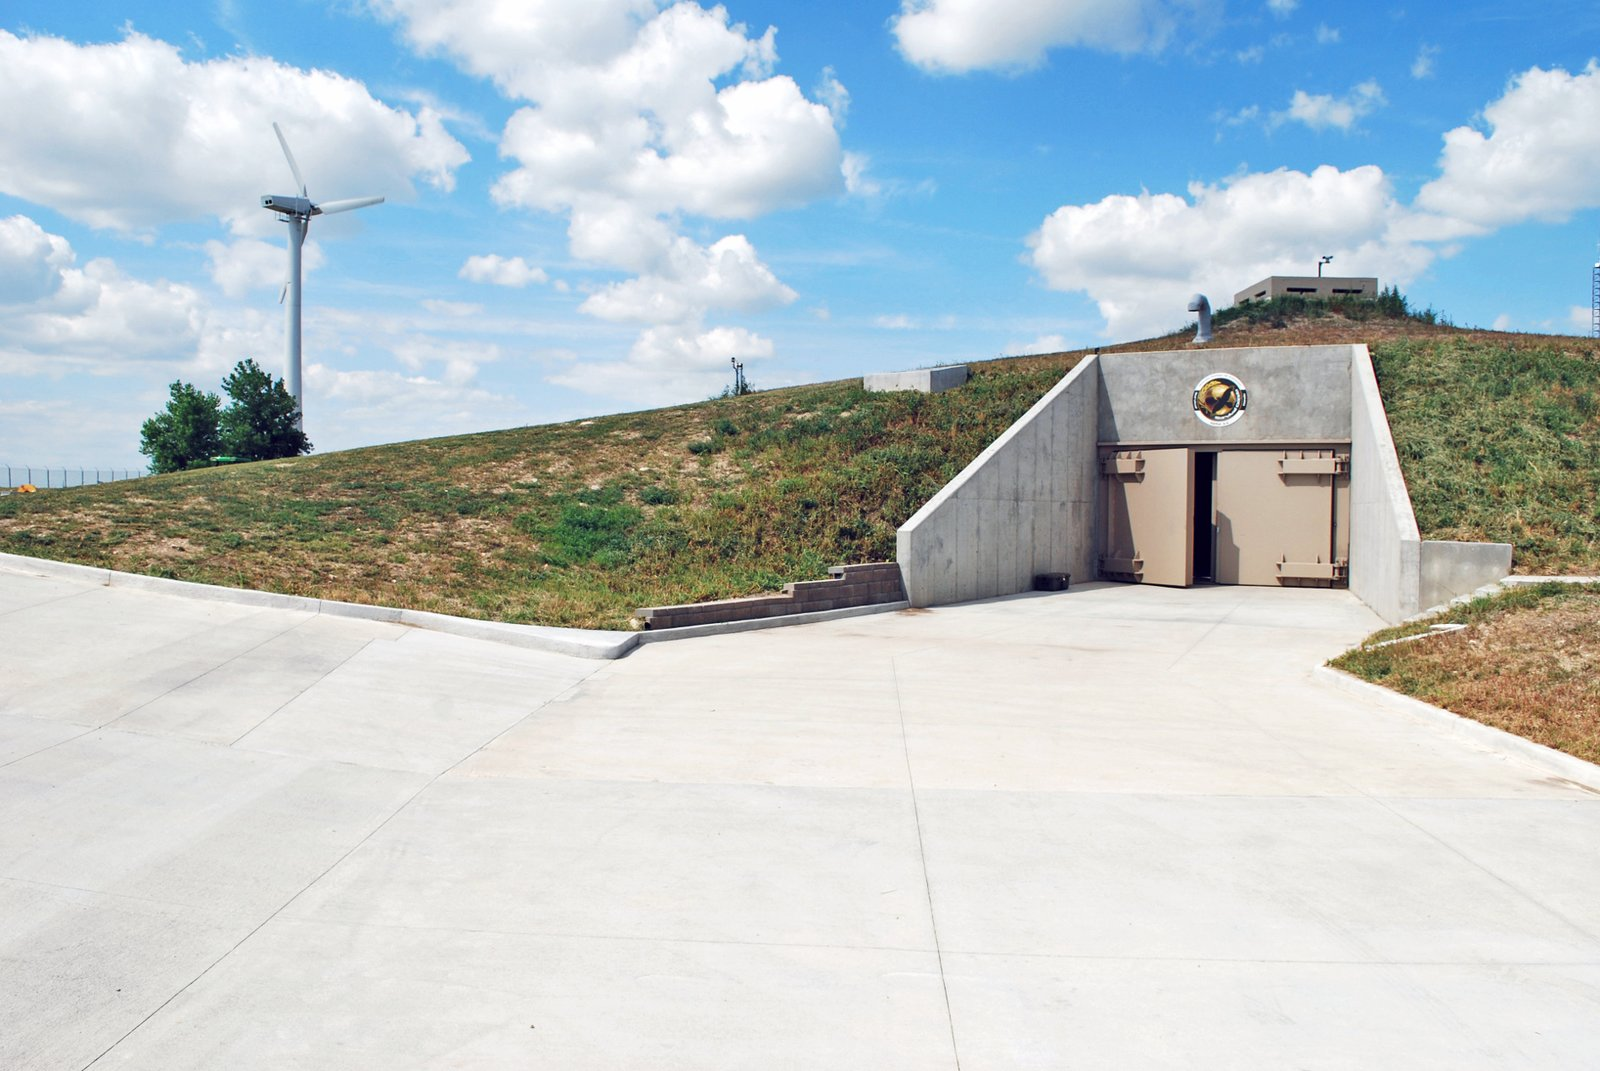 The Super Rich Are Buying Up Condos in Converted Missile Silos to Flee the Coronavirus